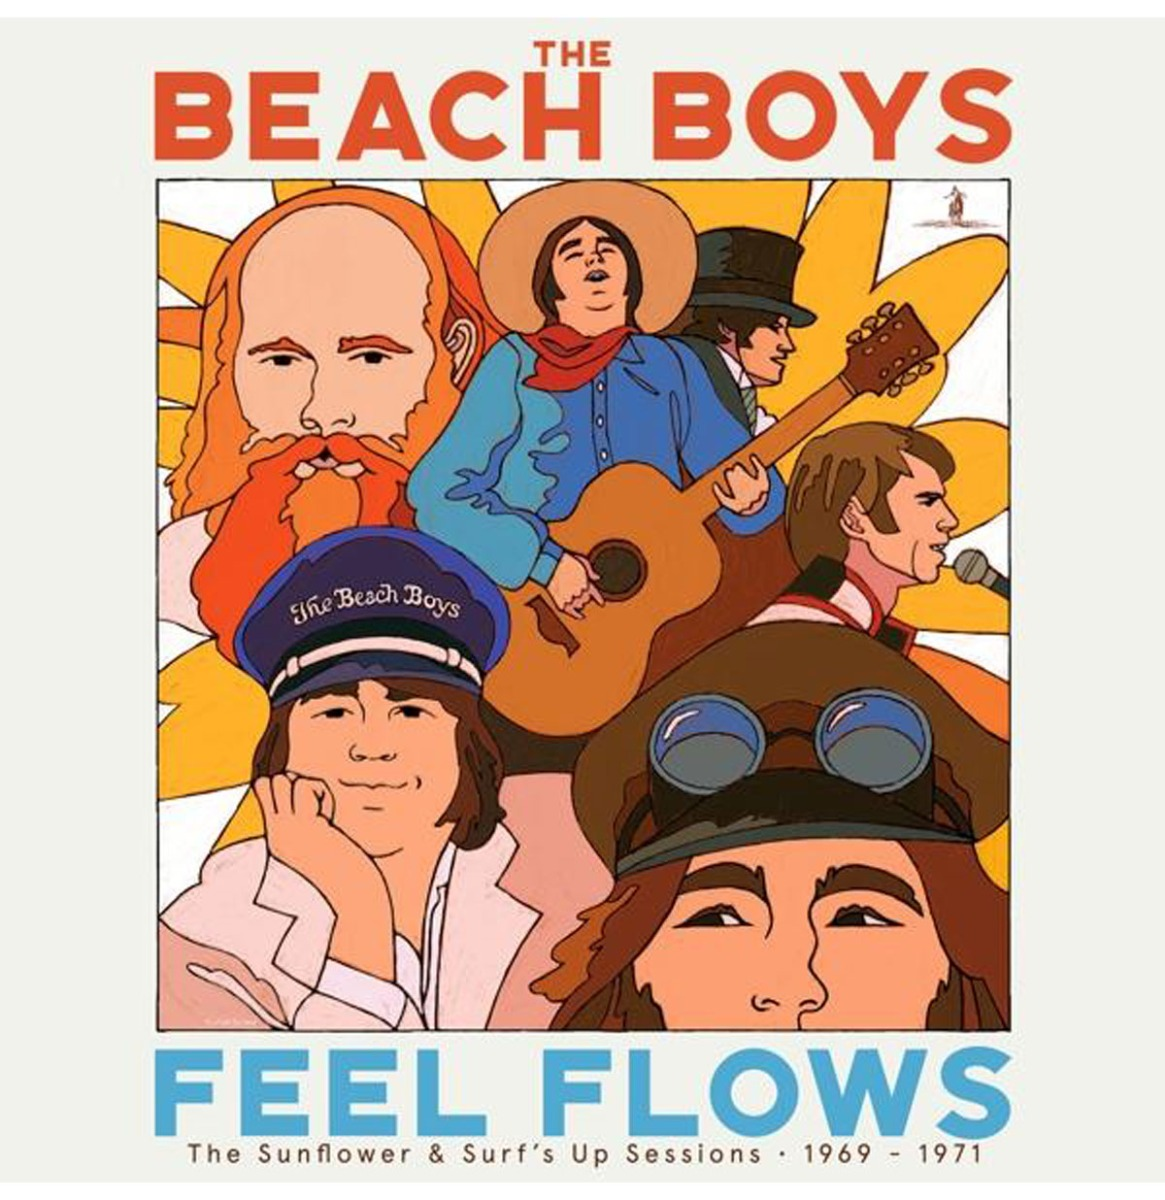 """The Beach Boys - """"Feel Flows"""" The Sunflower & Surf's Up Sessions 1969-1971 2LP"""